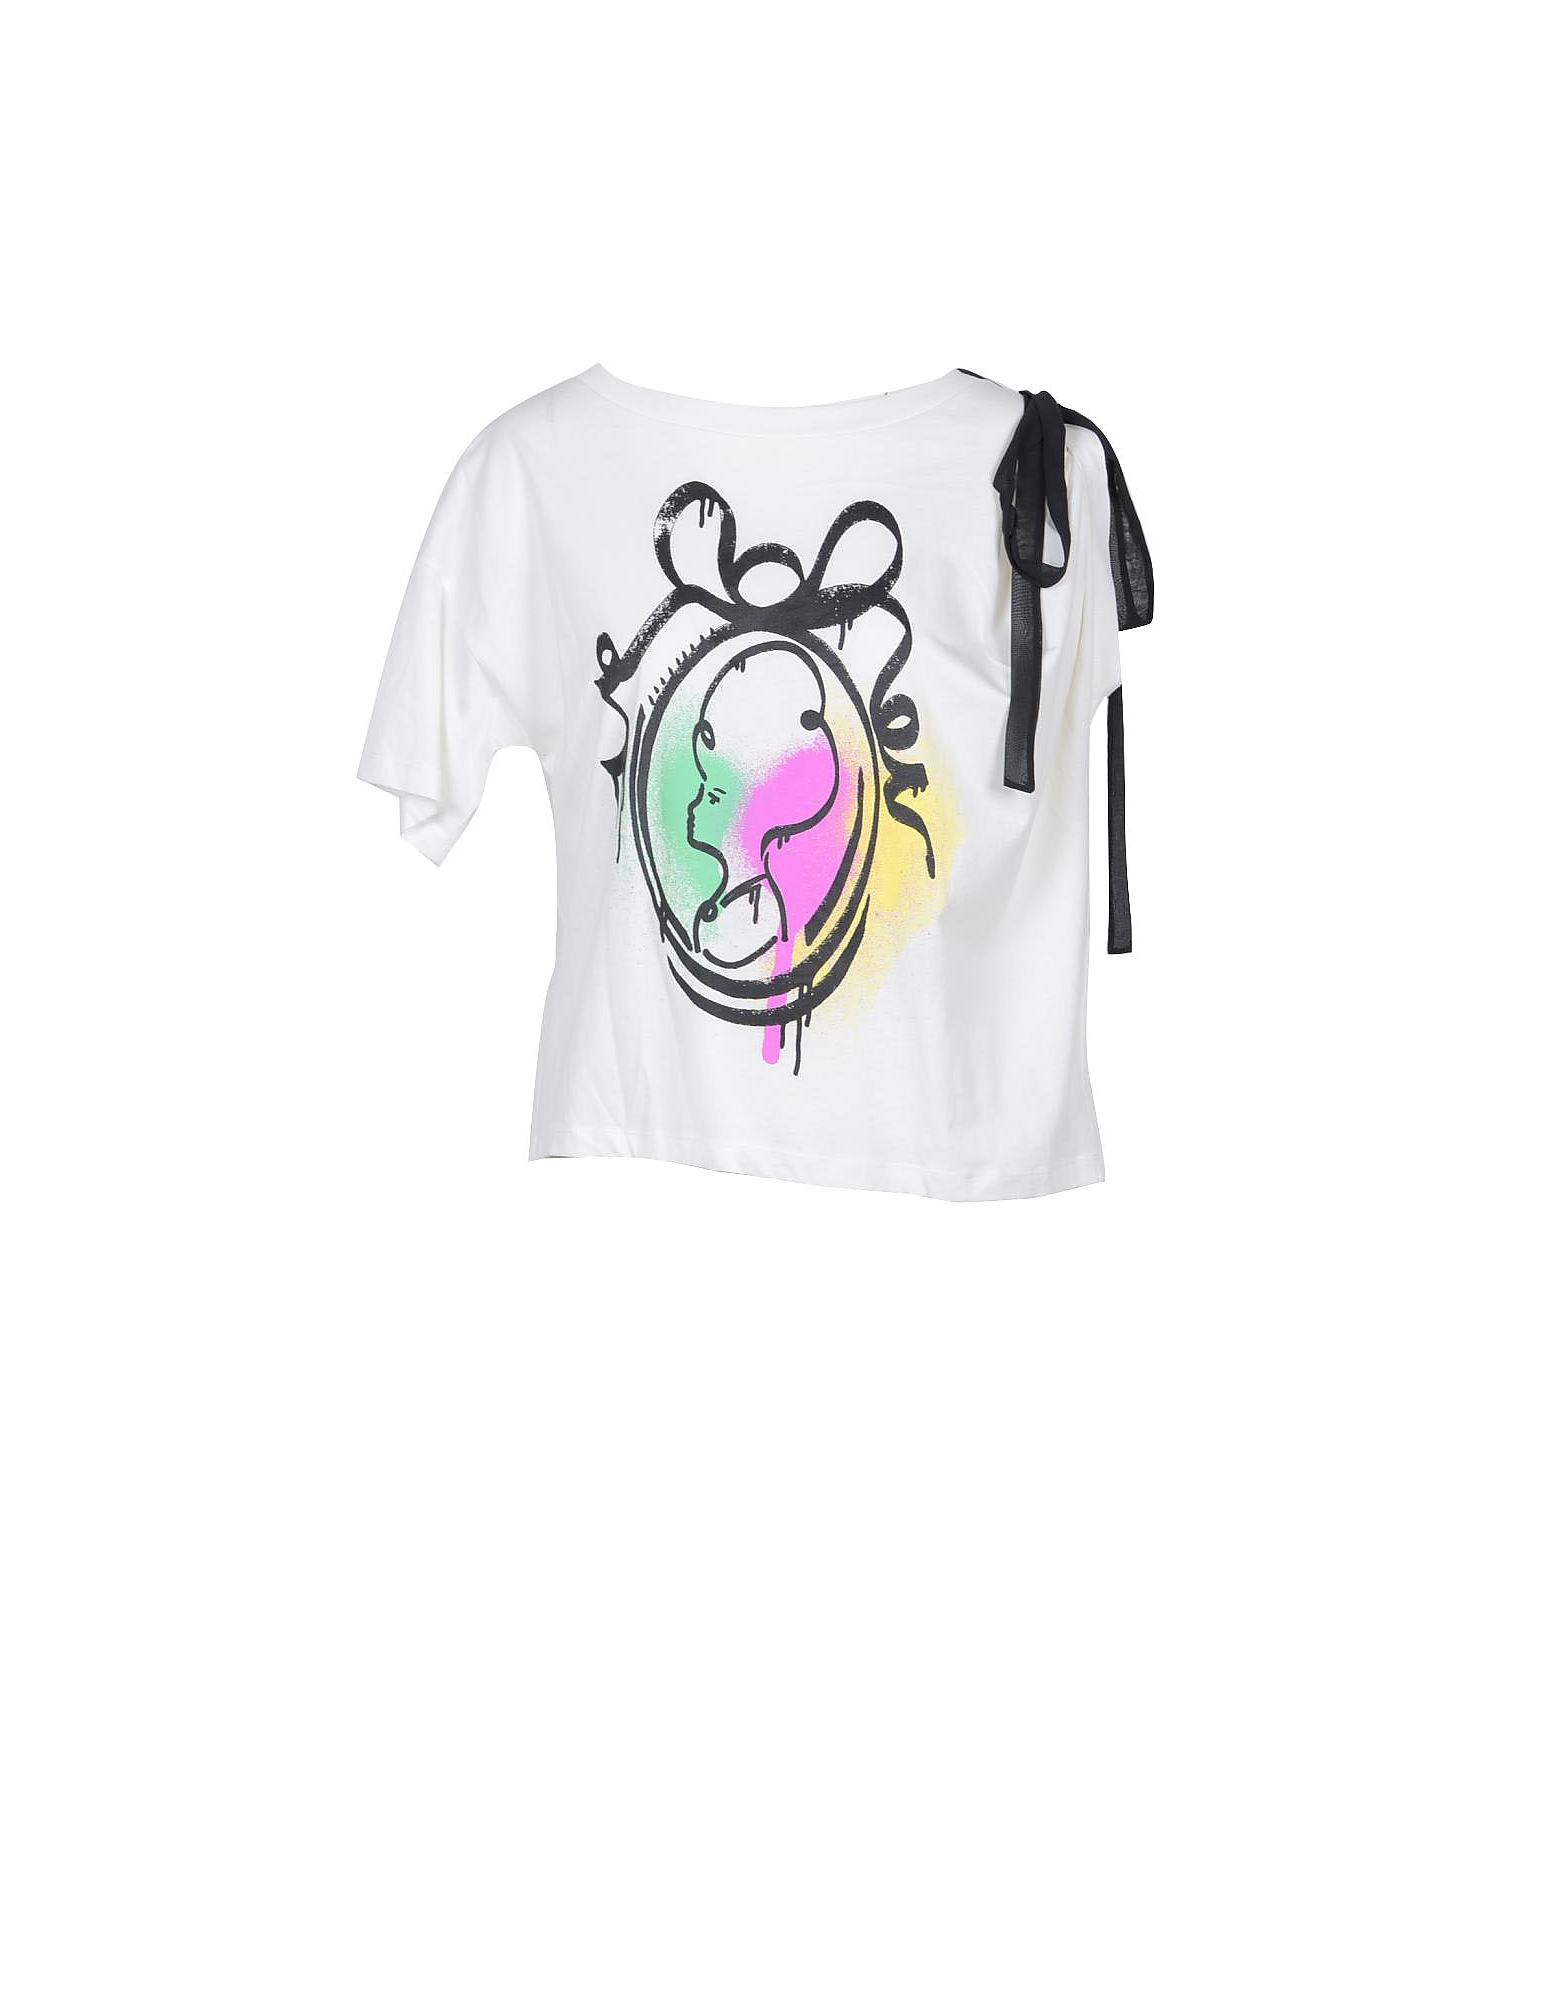 Moschino Designer T-Shirts & Tops, Pop Printed Cotton Moschino Boutique Women's T-Shirt w/Bow